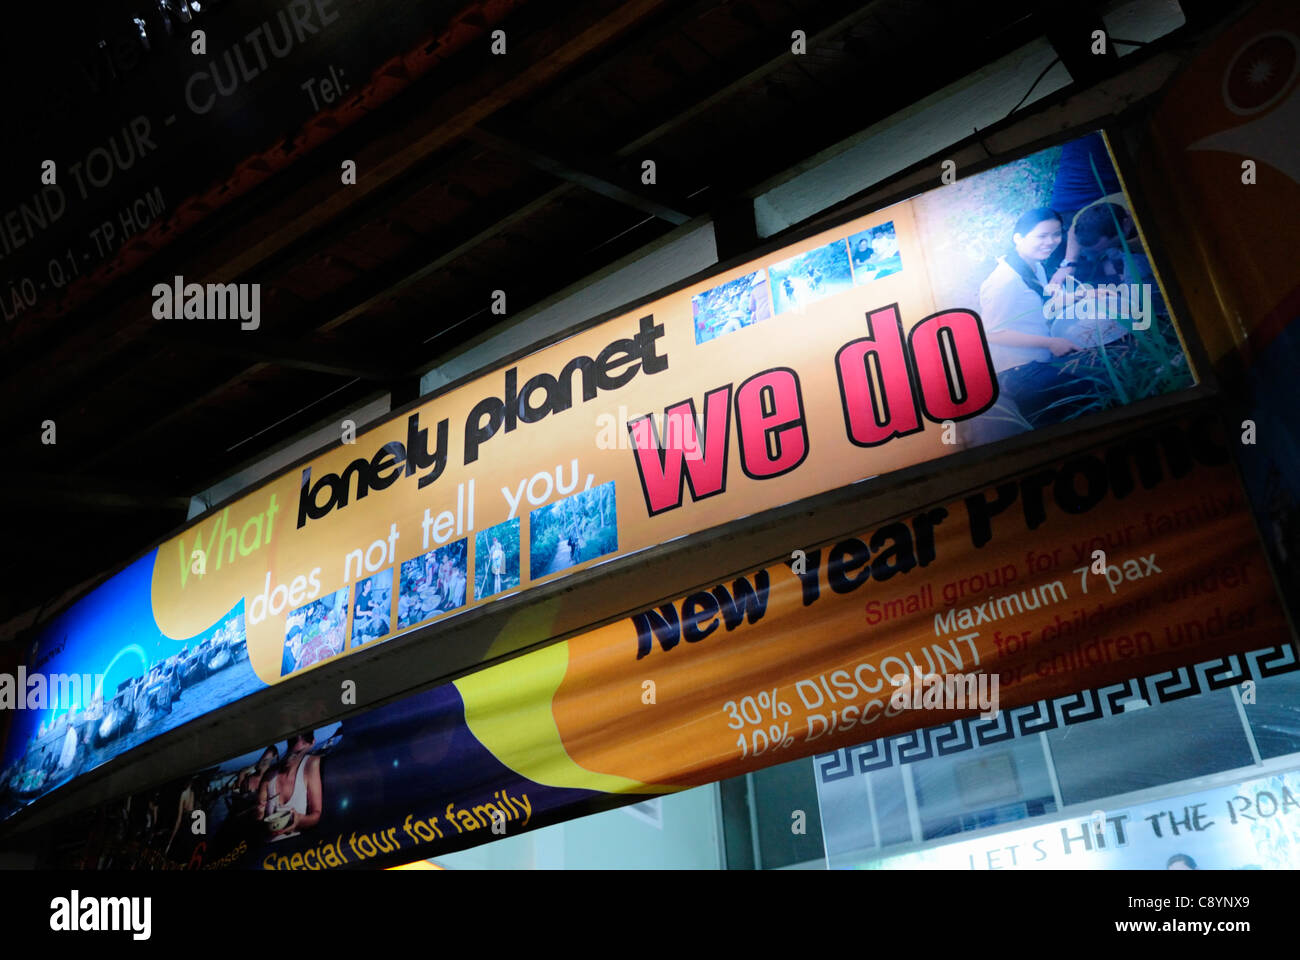 Stock Photo - Asia, Vietnam, Ho Chi Minh City (Saigon). Travel agency in the backpackers area around Pham Ngu Lao / Bui Vien St. advertisin